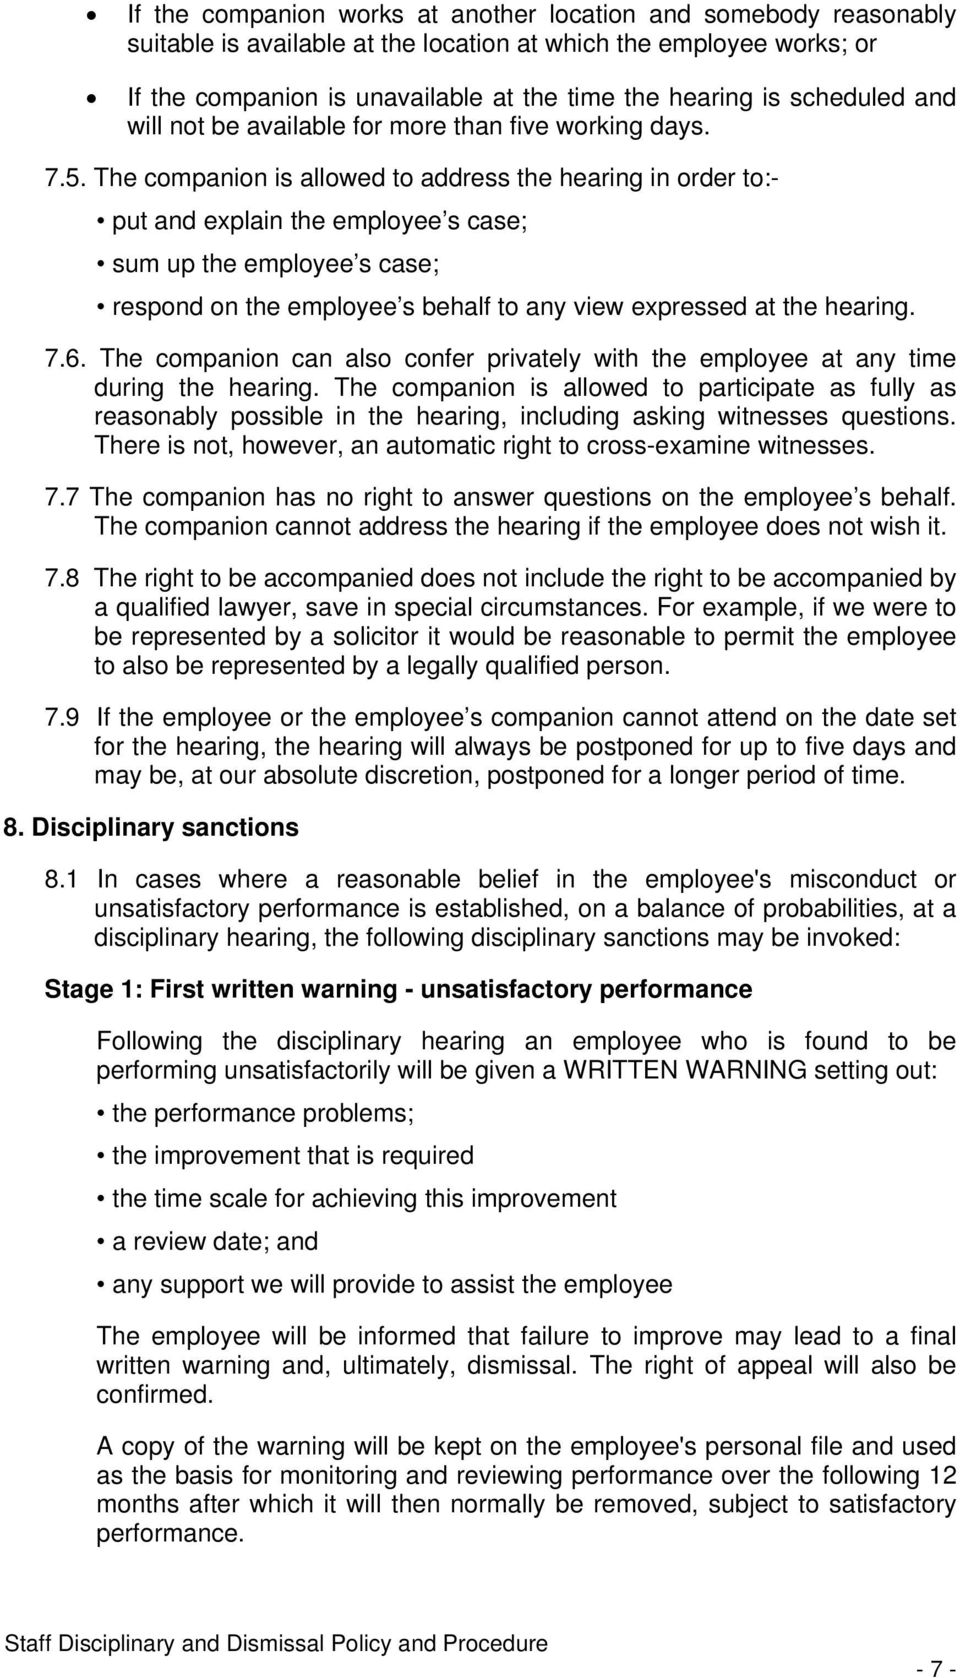 The companion is allowed to address the hearing in order to:- put and explain the employee s case; sum up the employee s case; respond on the employee s behalf to any view expressed at the hearing. 7.